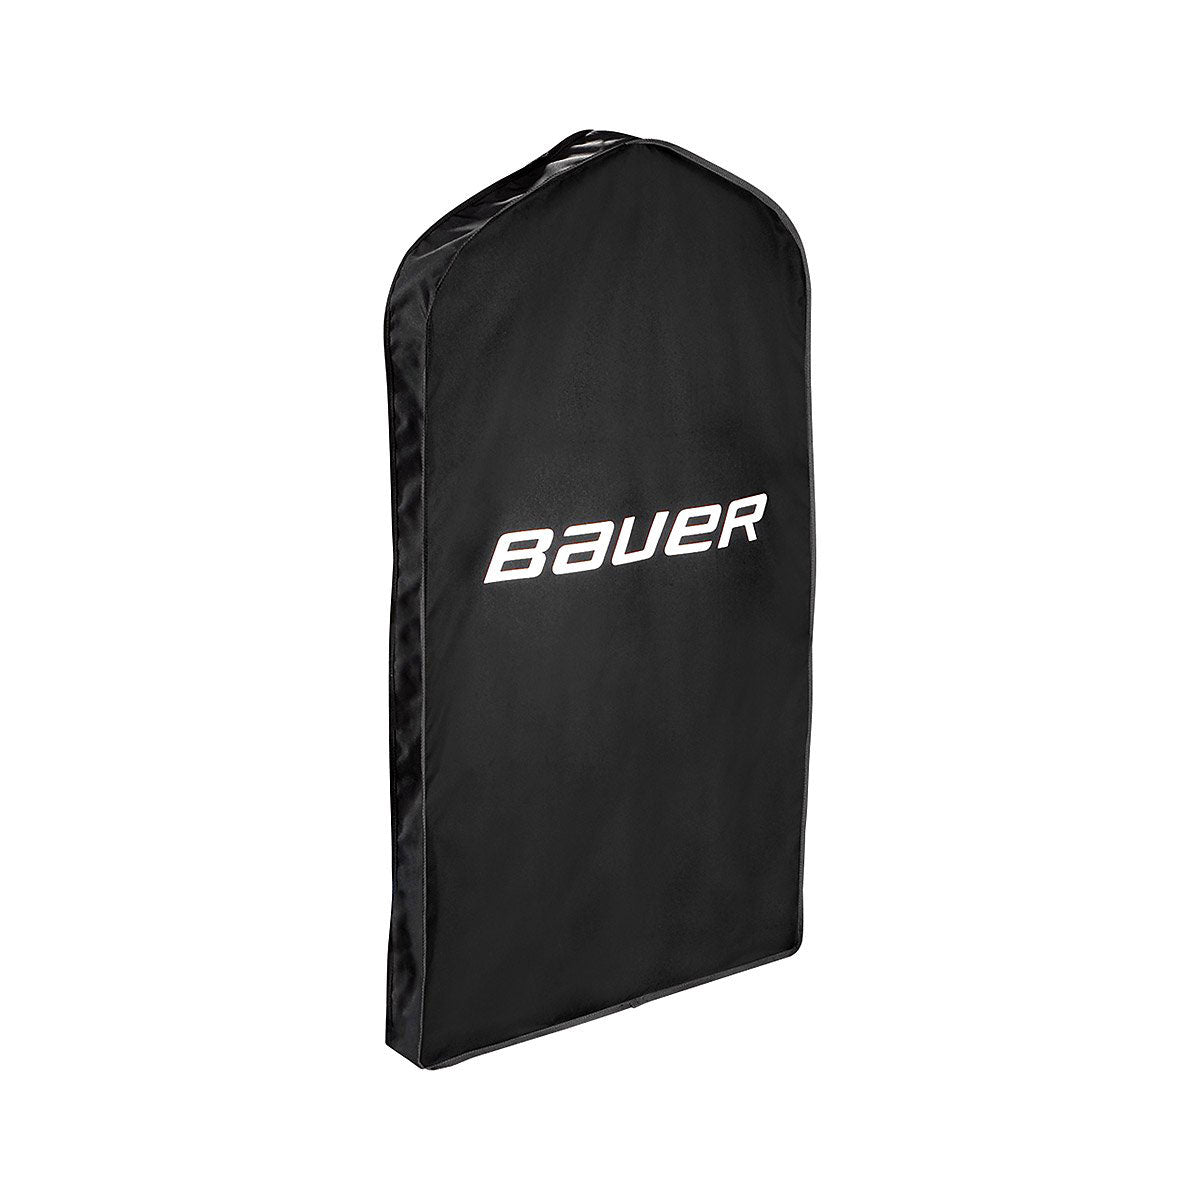 Bauer Team Jersey Bag